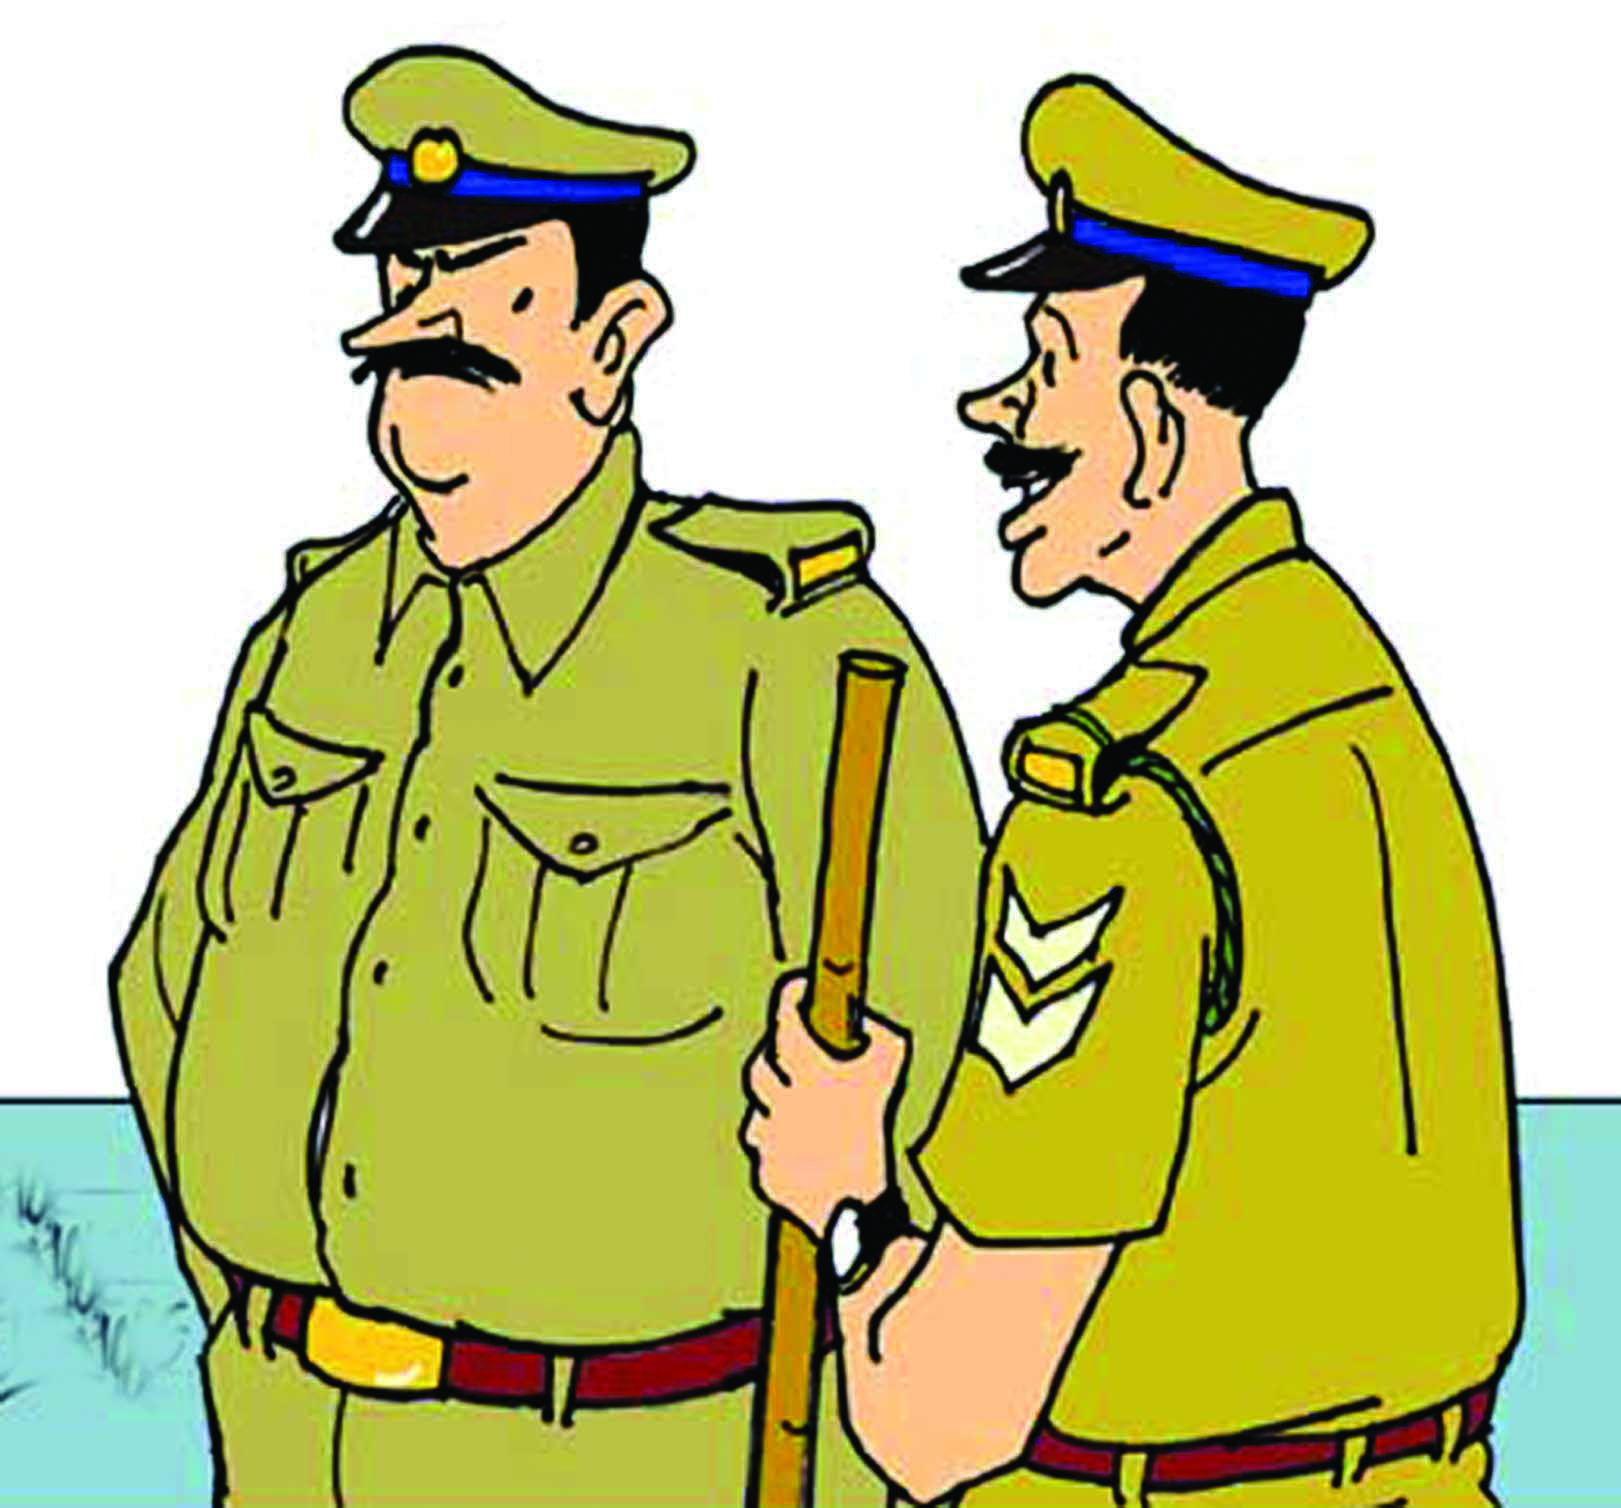 Indian policeman clipart.